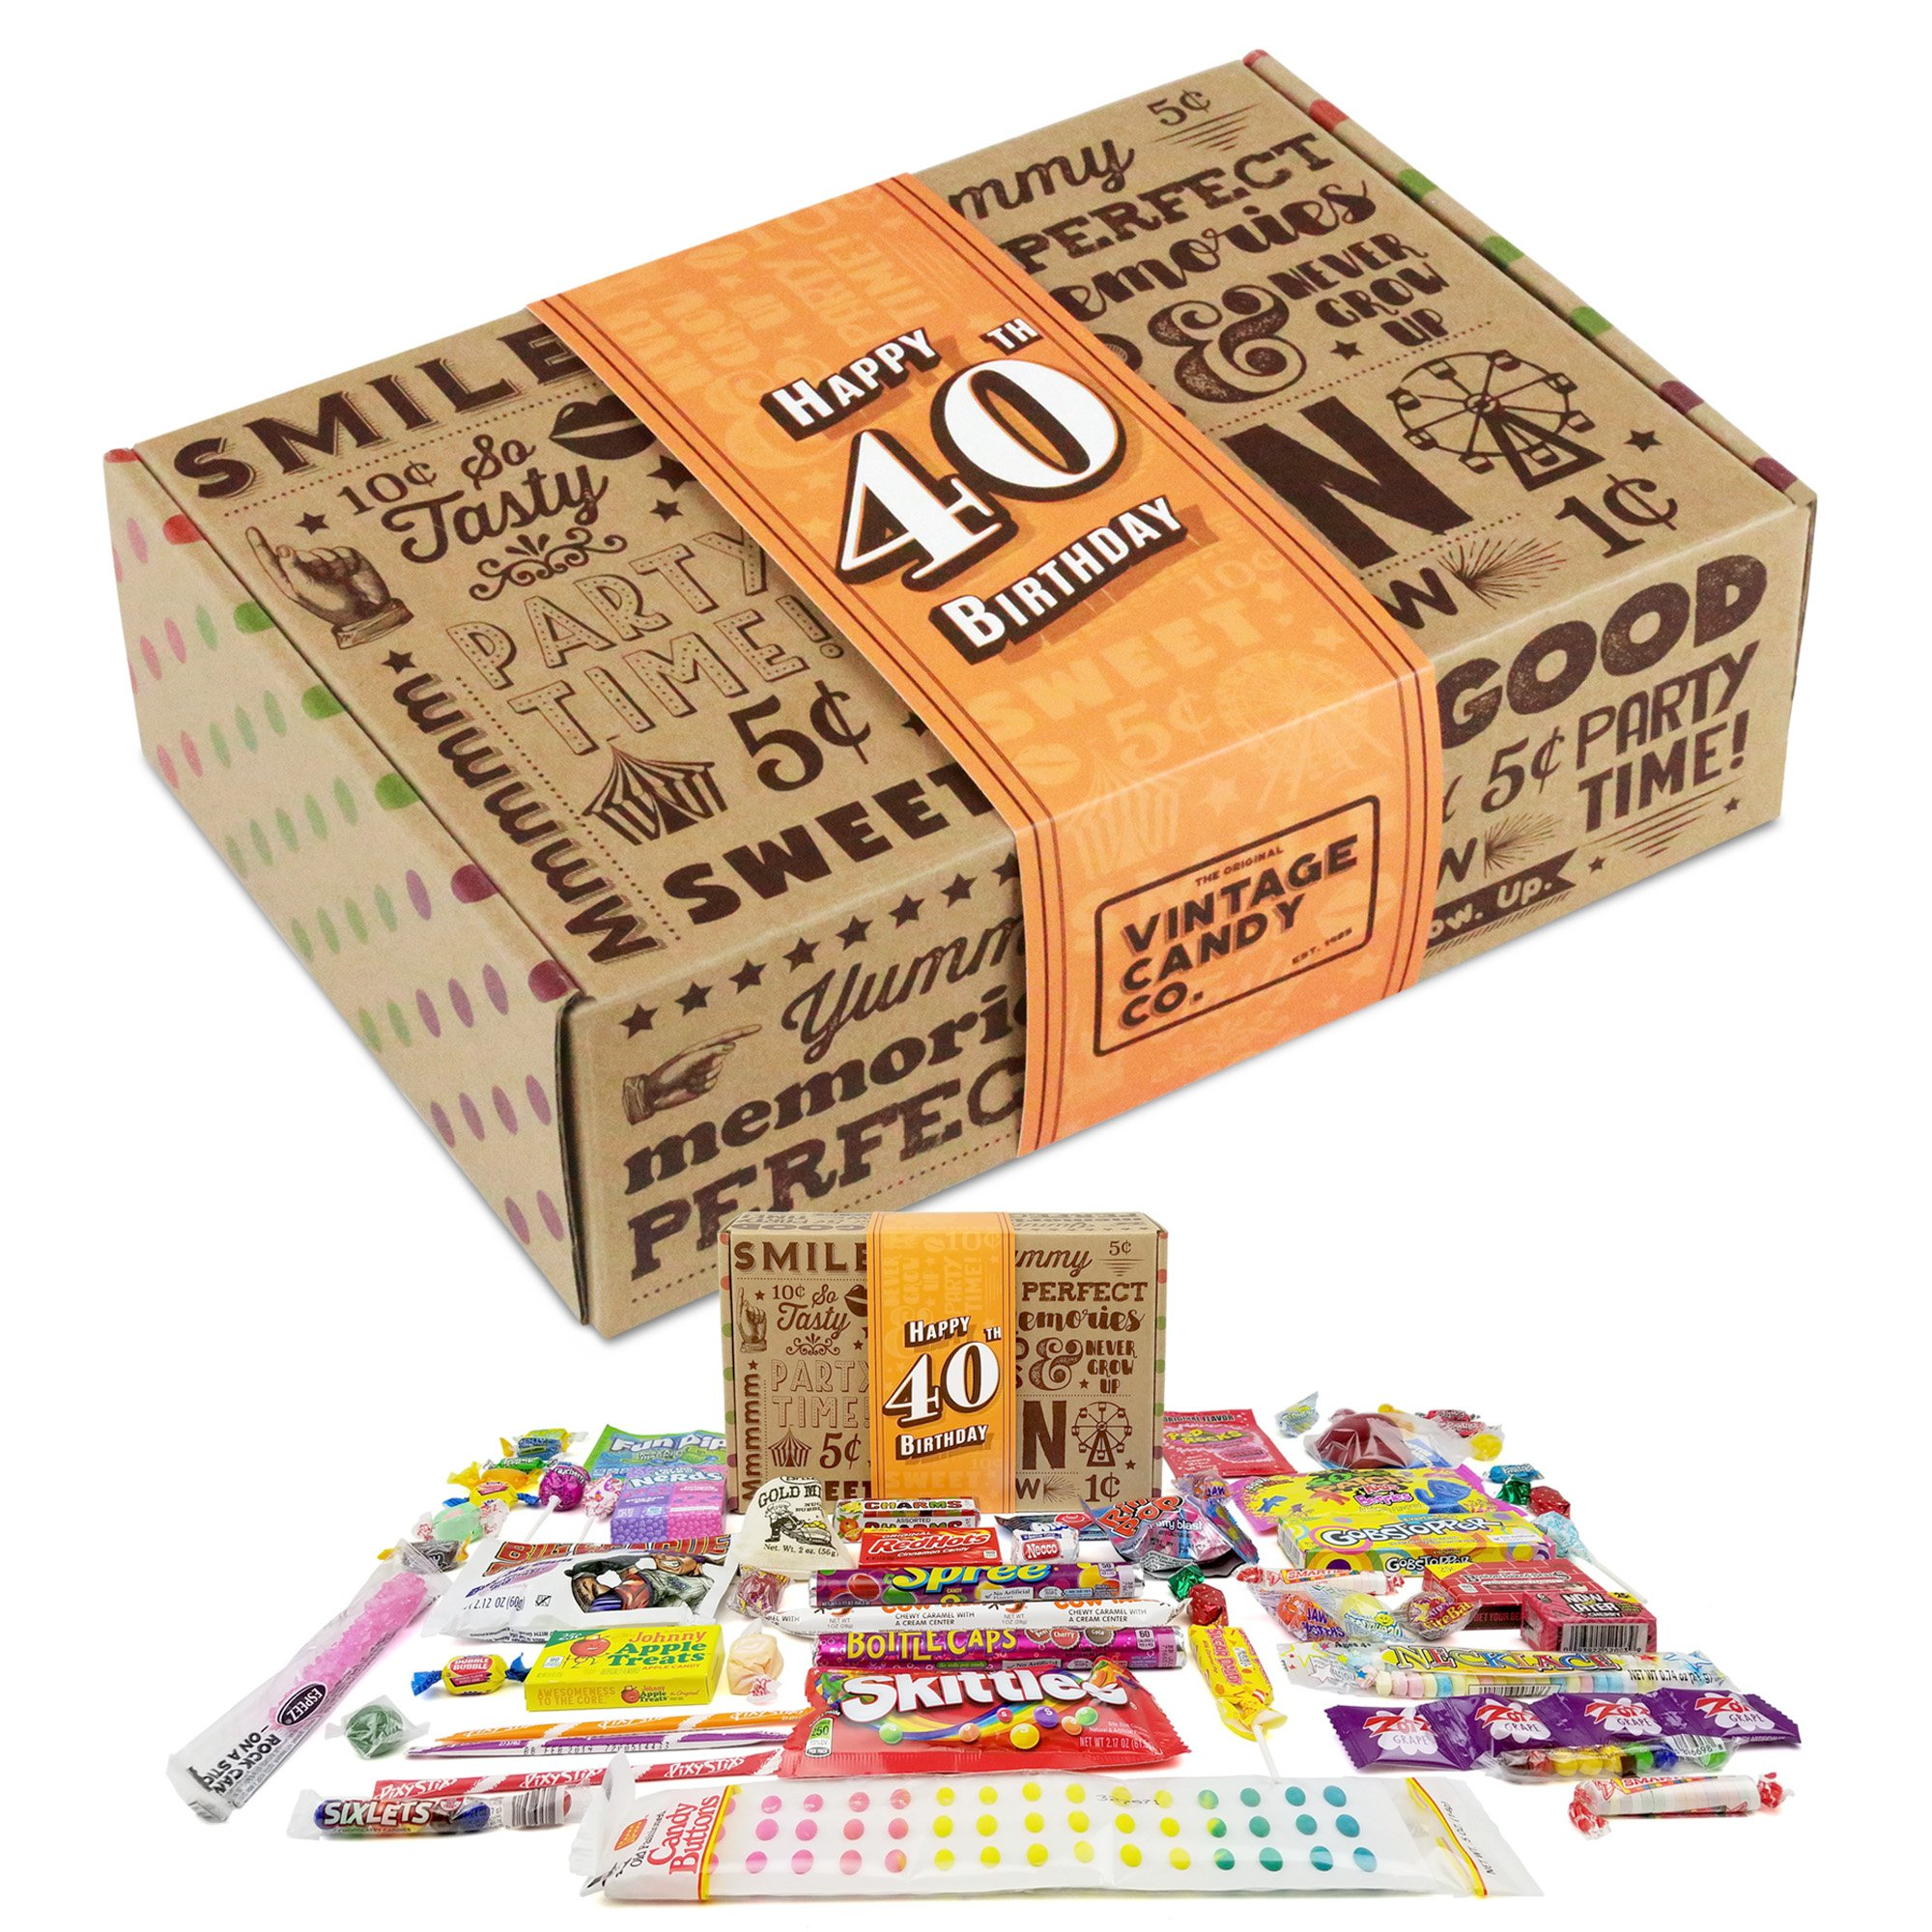 40TH BIRTHDAY RETRO CANDY GIFT BOX - 1979 Decade Childhood Nostalgic Candies  sc 1 st  Amazon.com & Gifts for 40 Year Old Man: Amazon.com